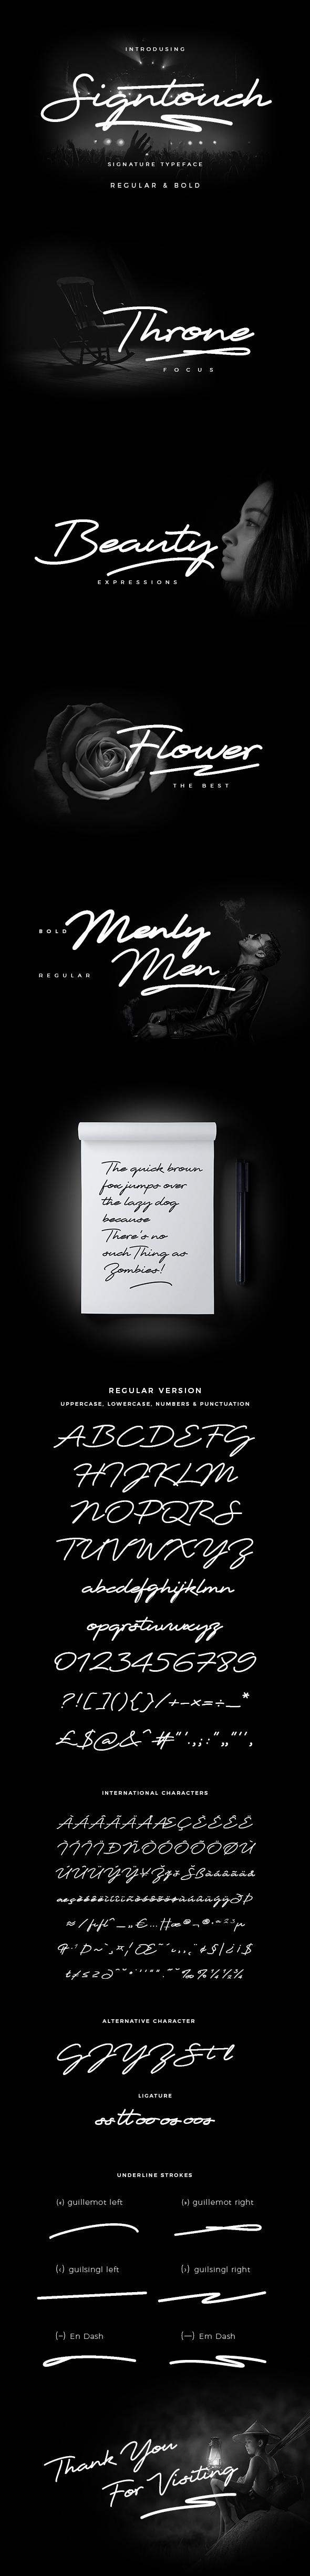 Signtouch Signature Font - Calligraphy Script